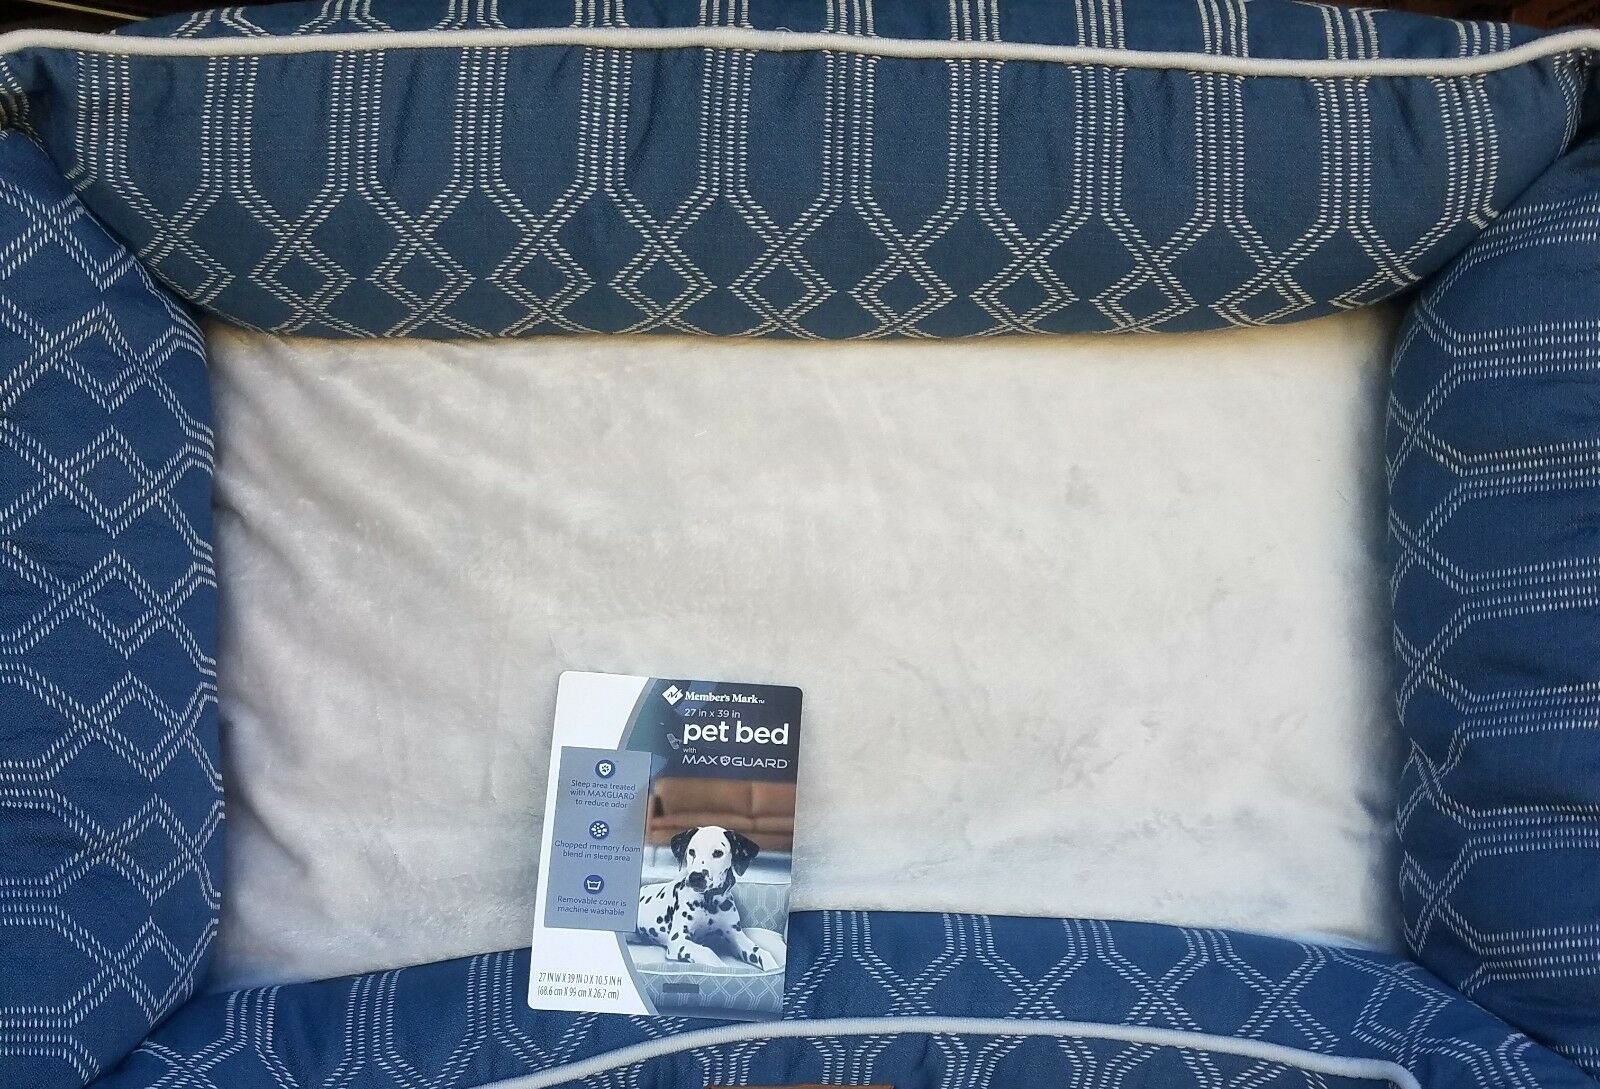 Members Mark Maxguard Large Removable Cover Pet Dog Bed 39  x 27  bluee